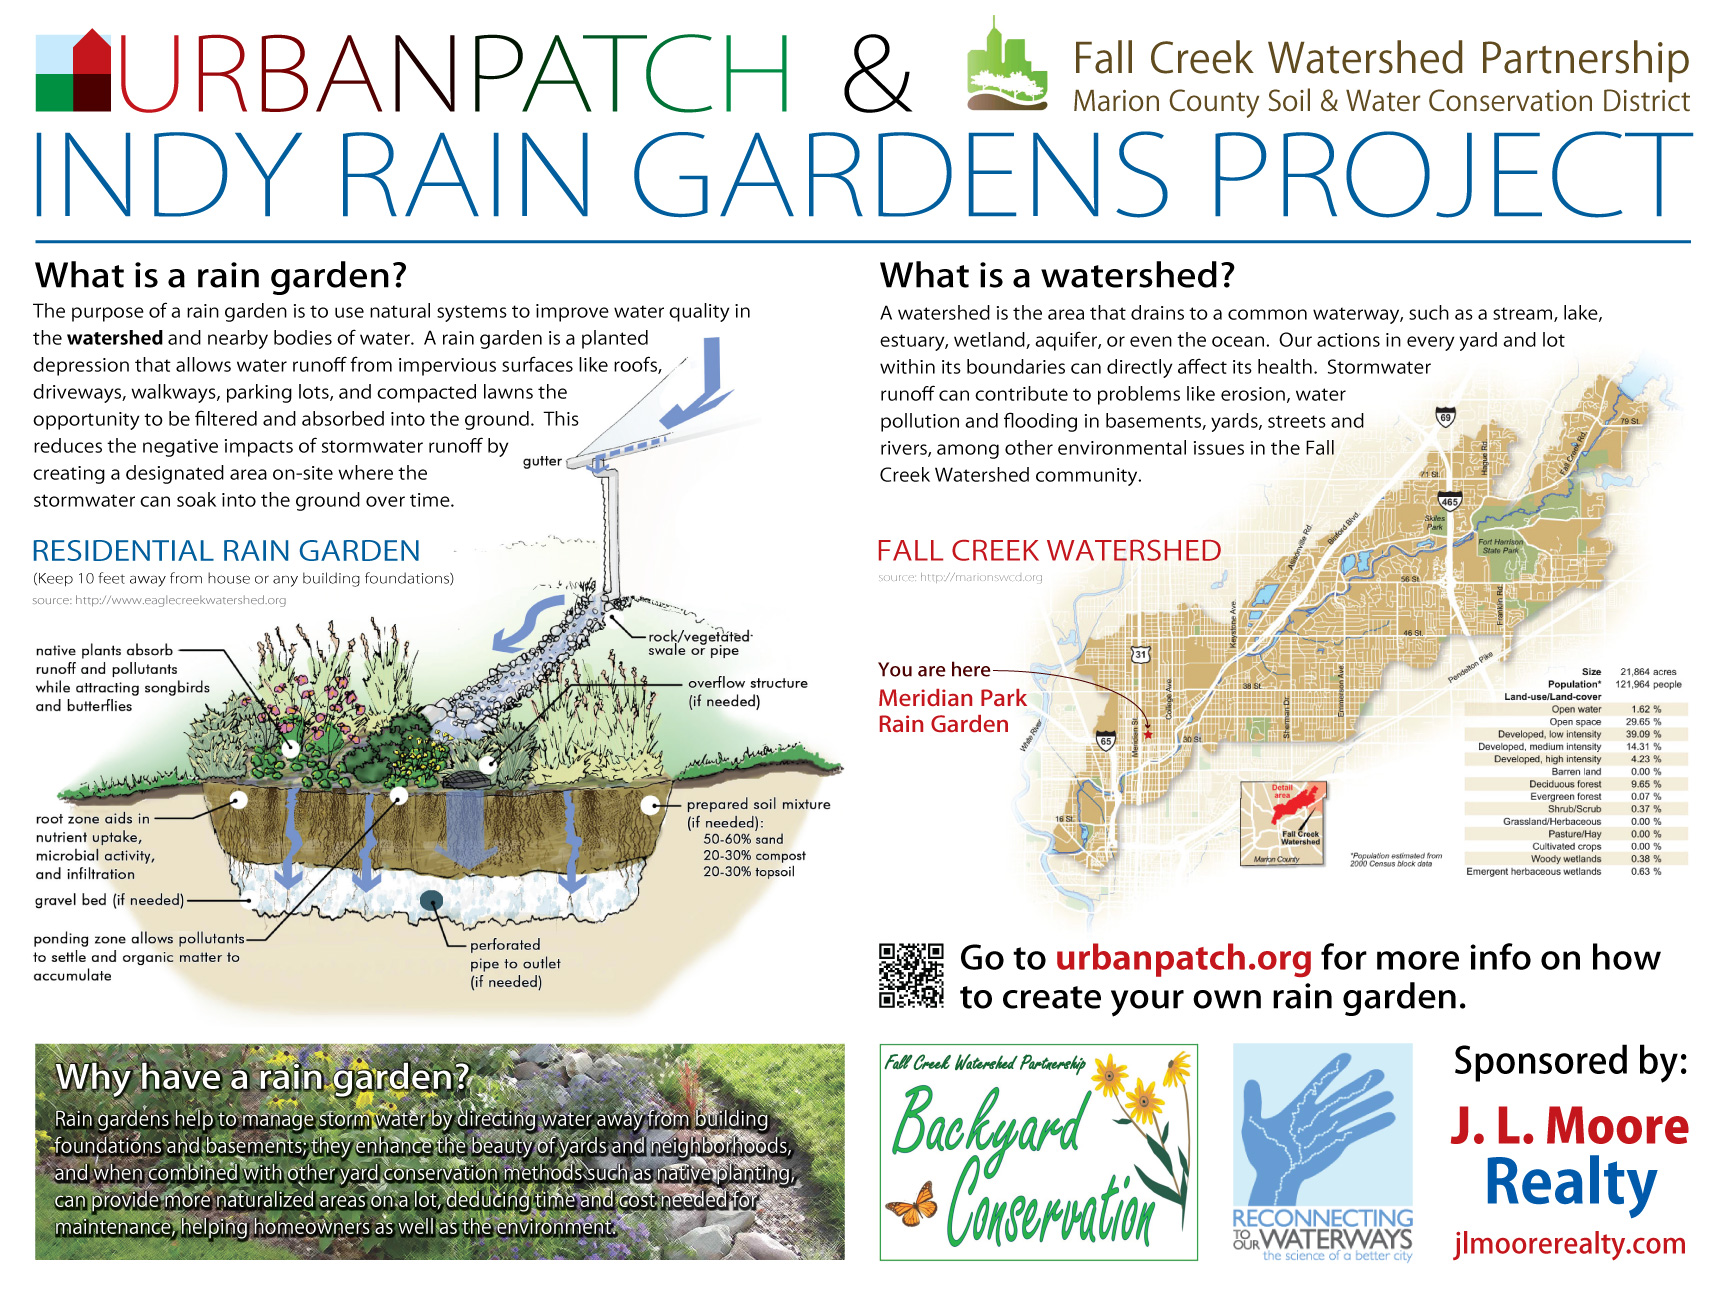 Indy Rain Gardens Urban Patch